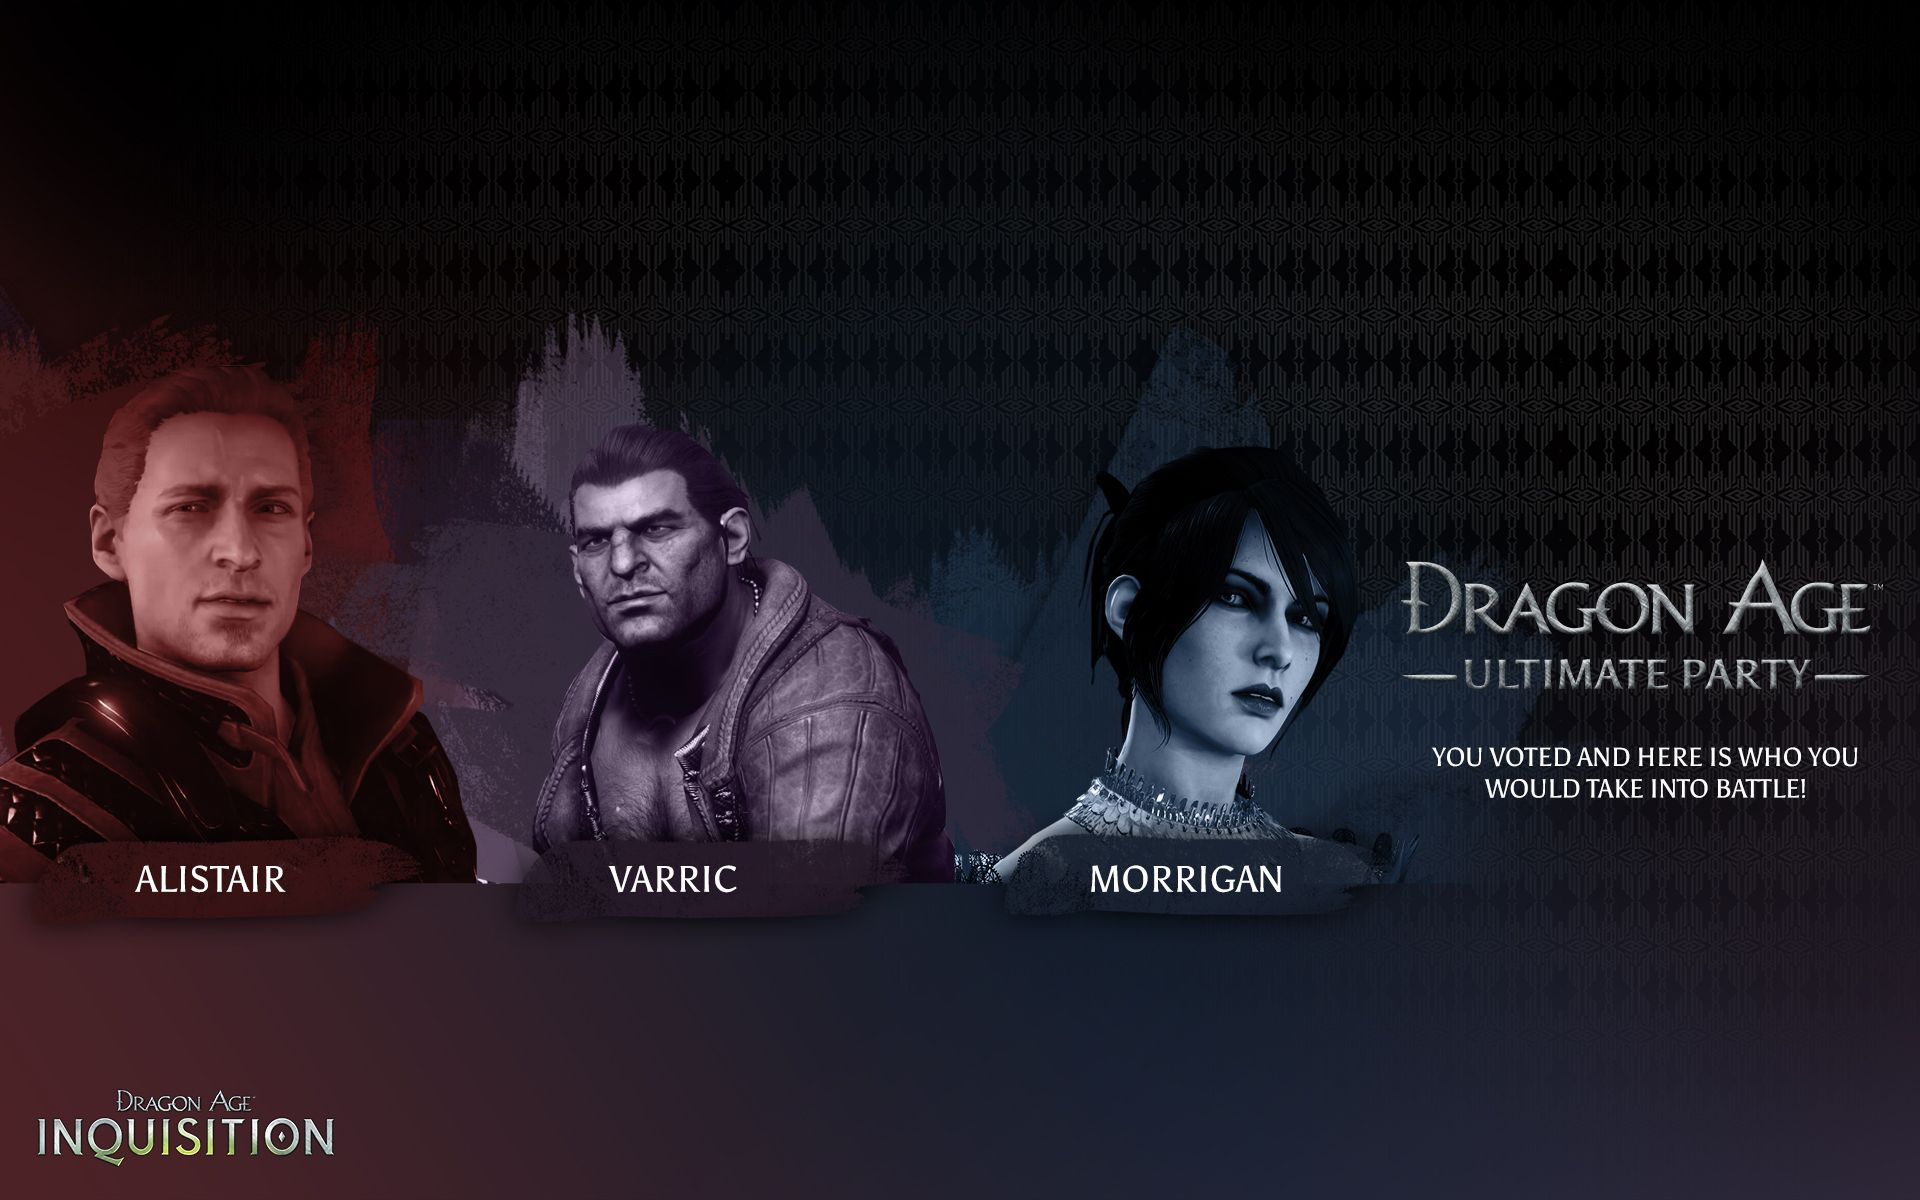 The Ultimate Dragon Age Party An Ultimate Party Deserves An Ultimate Commemorative Wallpaper Dragon Age Dragon Age Origins Dragon Age 3